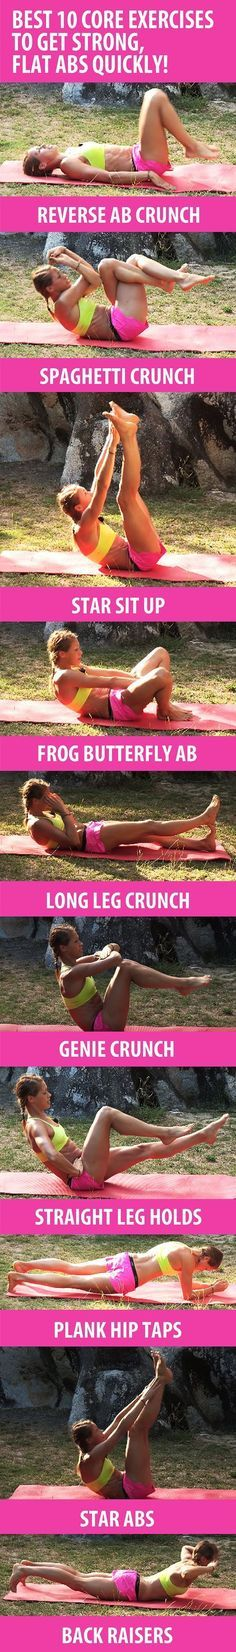 Exercises for flat abs